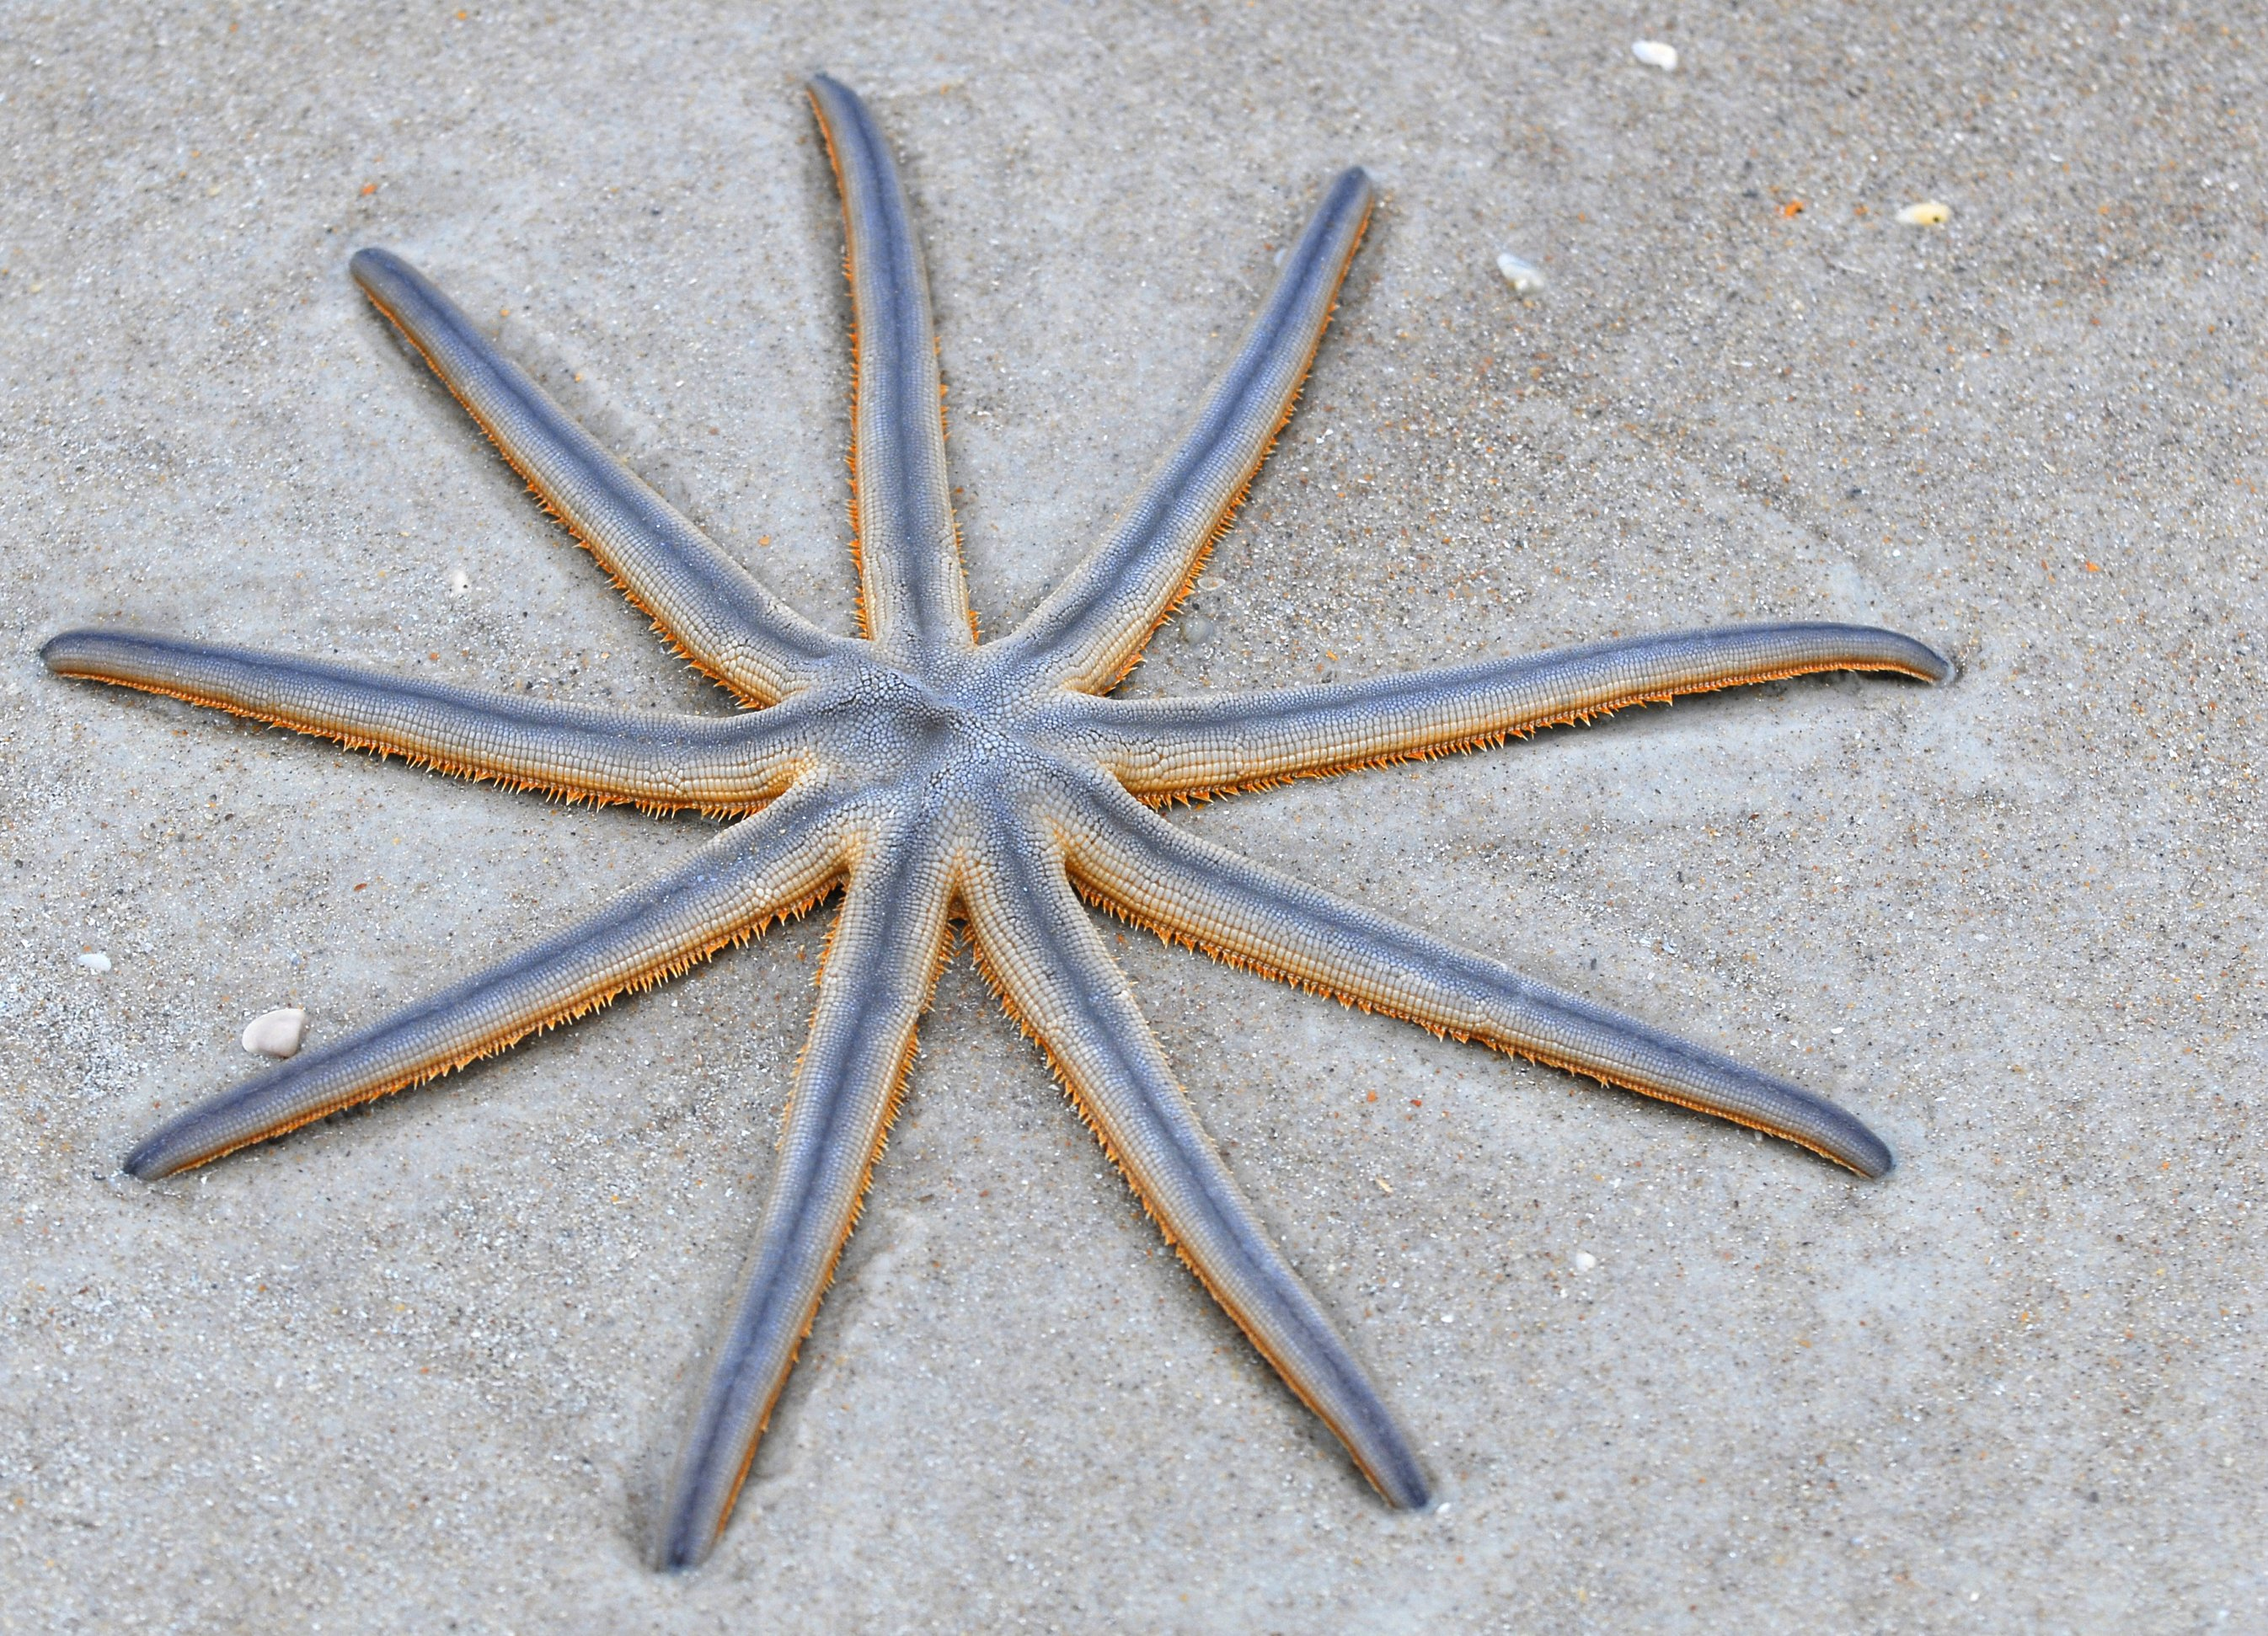 How Do Echinoderms Eat Their Food